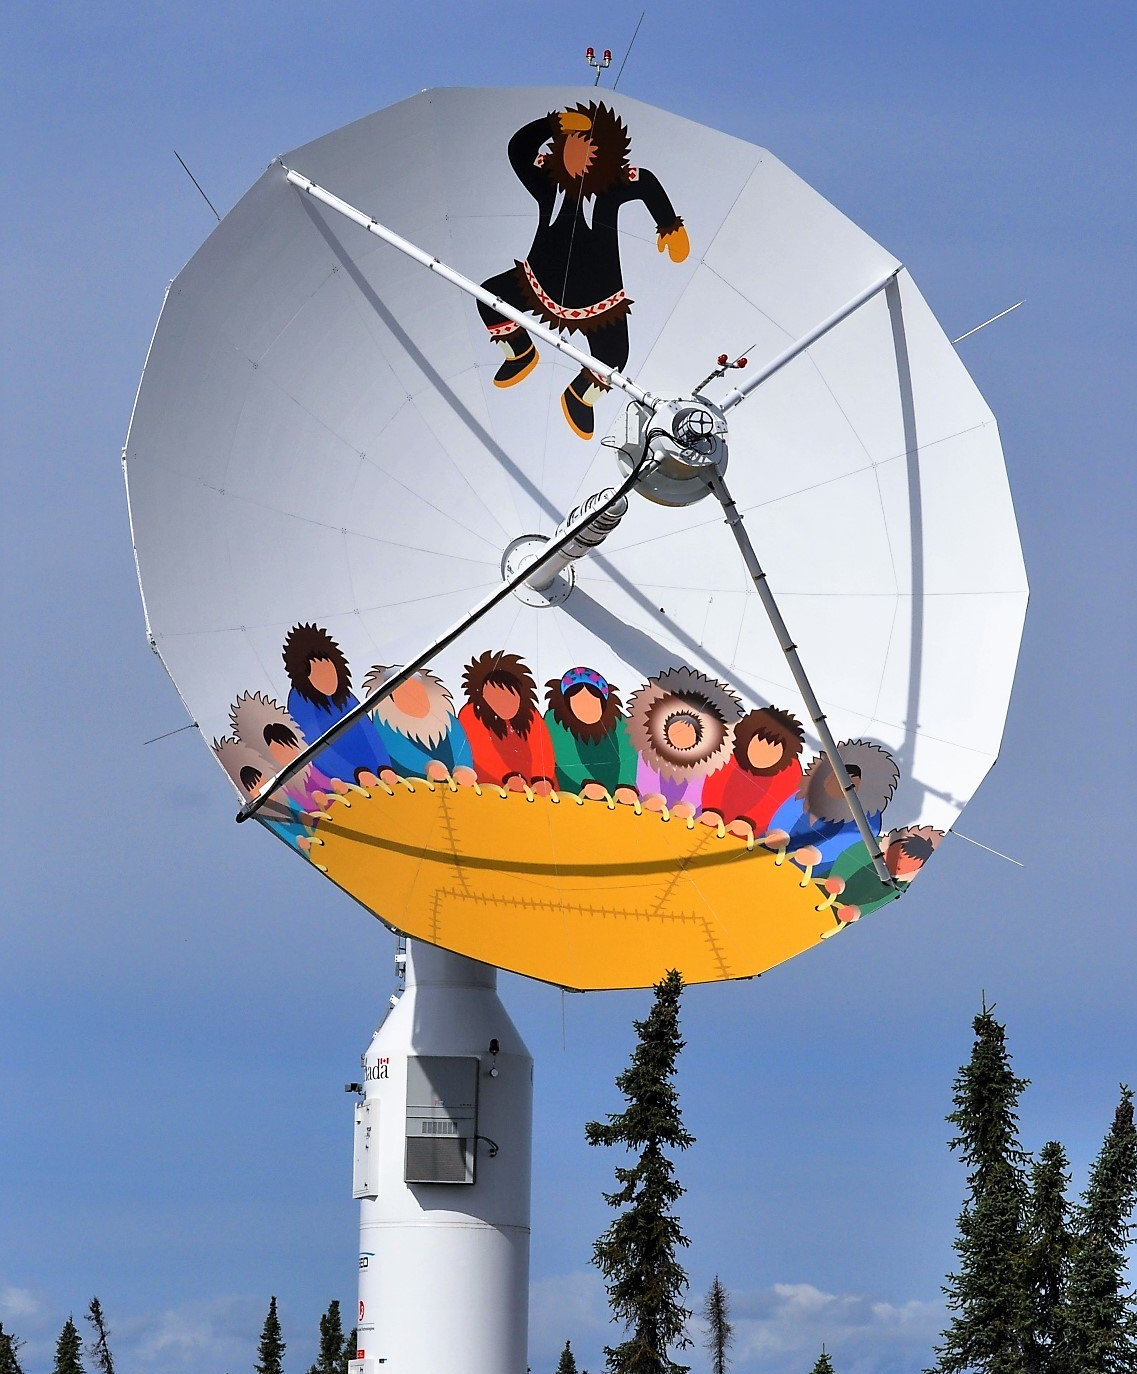 One of the satellite receiving dishes at the Inuvik Satellite Station Facility in Inuvik, Northwest Territories which receive data from the RCM